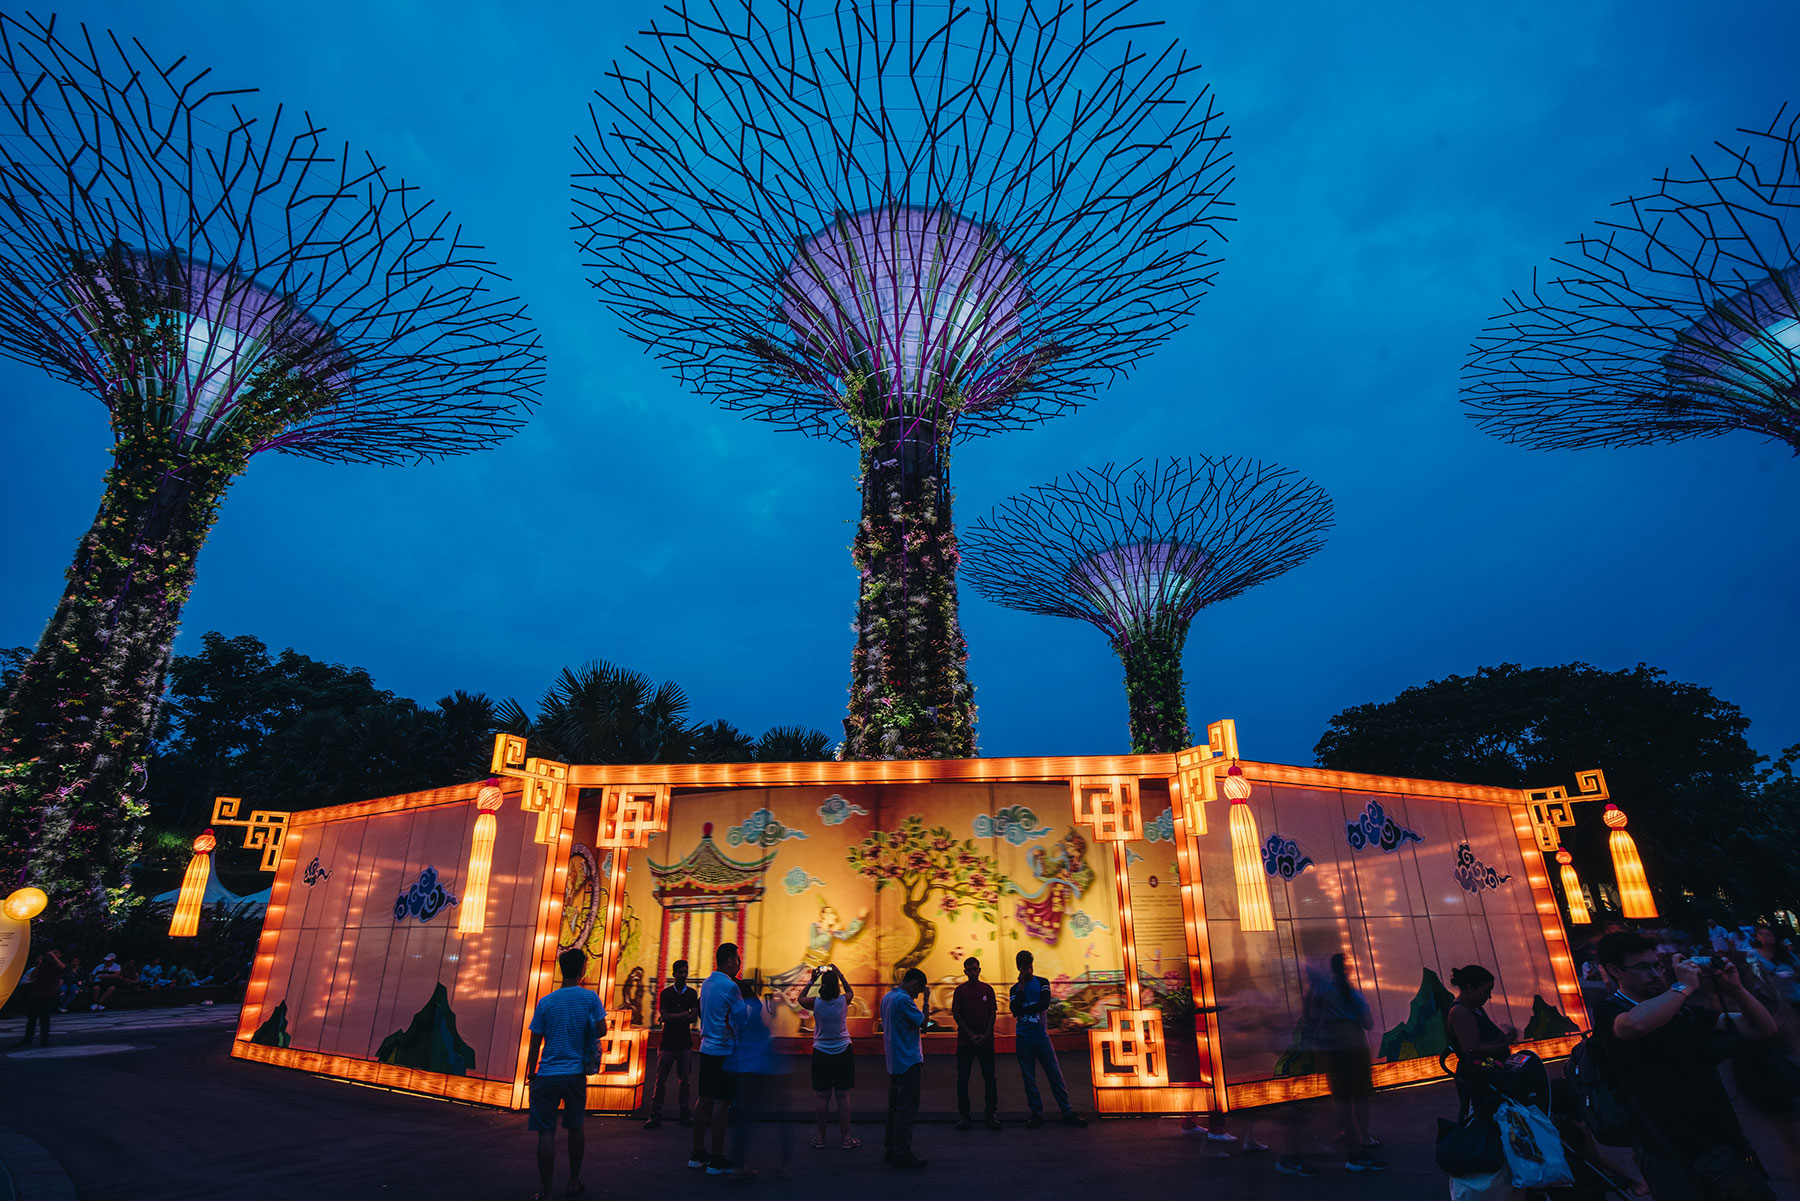 MID-AUTUMN FESTIVAL 2019 AT GARDENS BY THE BAY